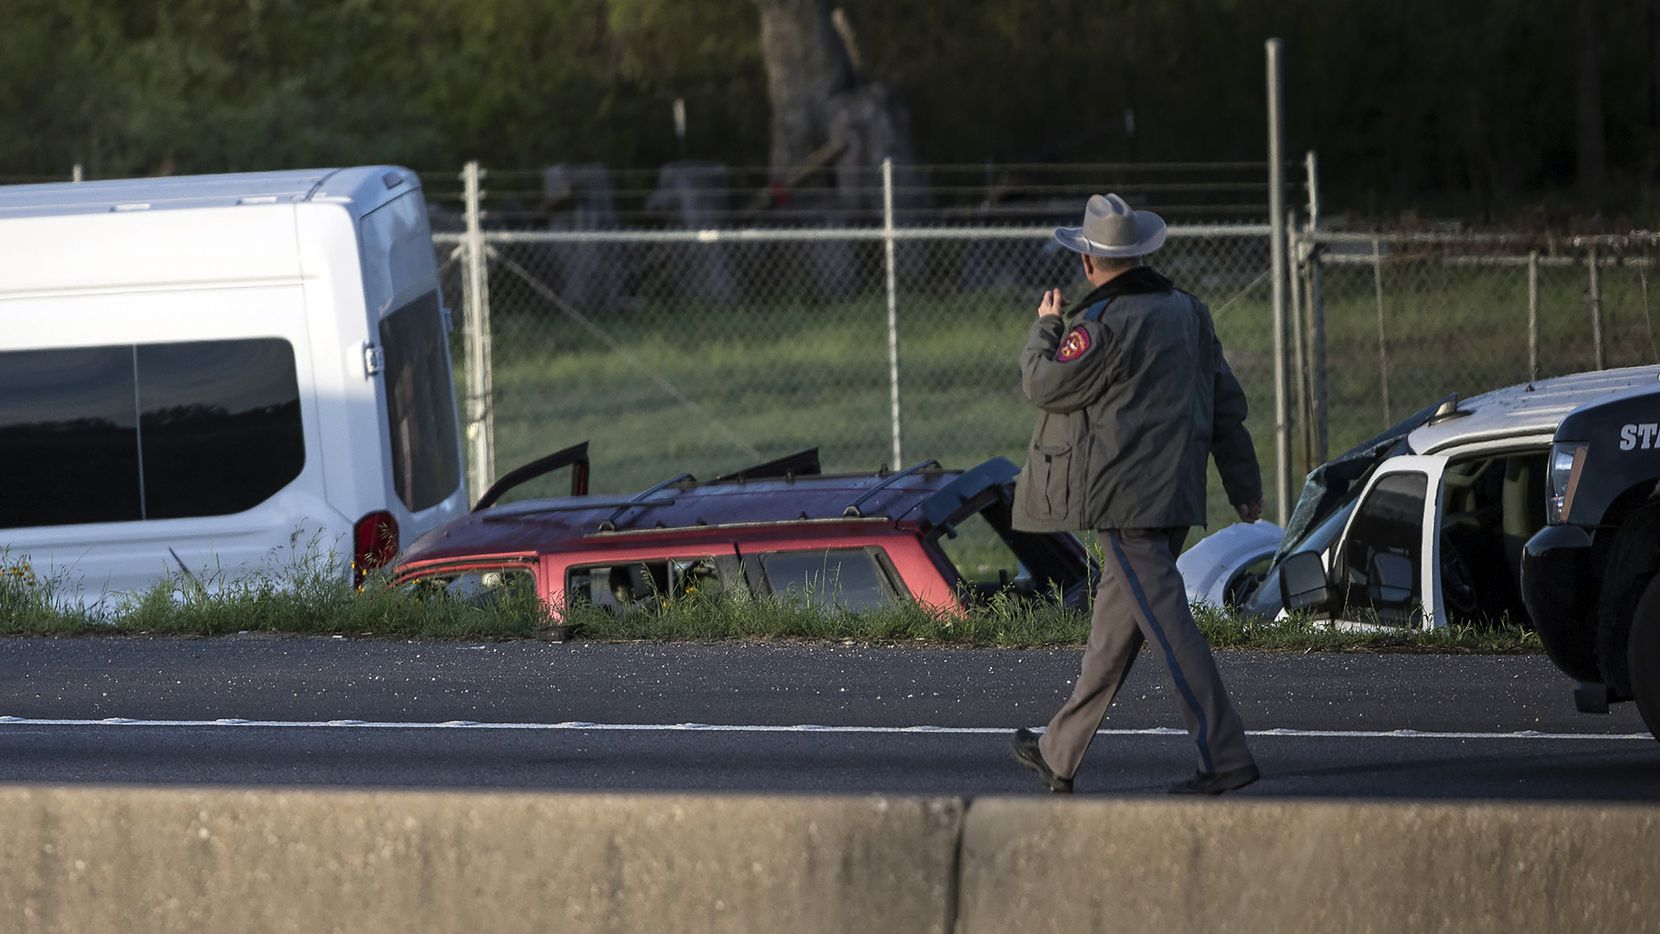 A Texas DPS trooper surveys the scene where authorities say Mark Anthony Conditt of Pflugerville, suspected in a series of bombings in Austin, killed himself by detonating a device in his vehicle as SWAT officers closed in to arrest him early Wednesday in Round Rock.